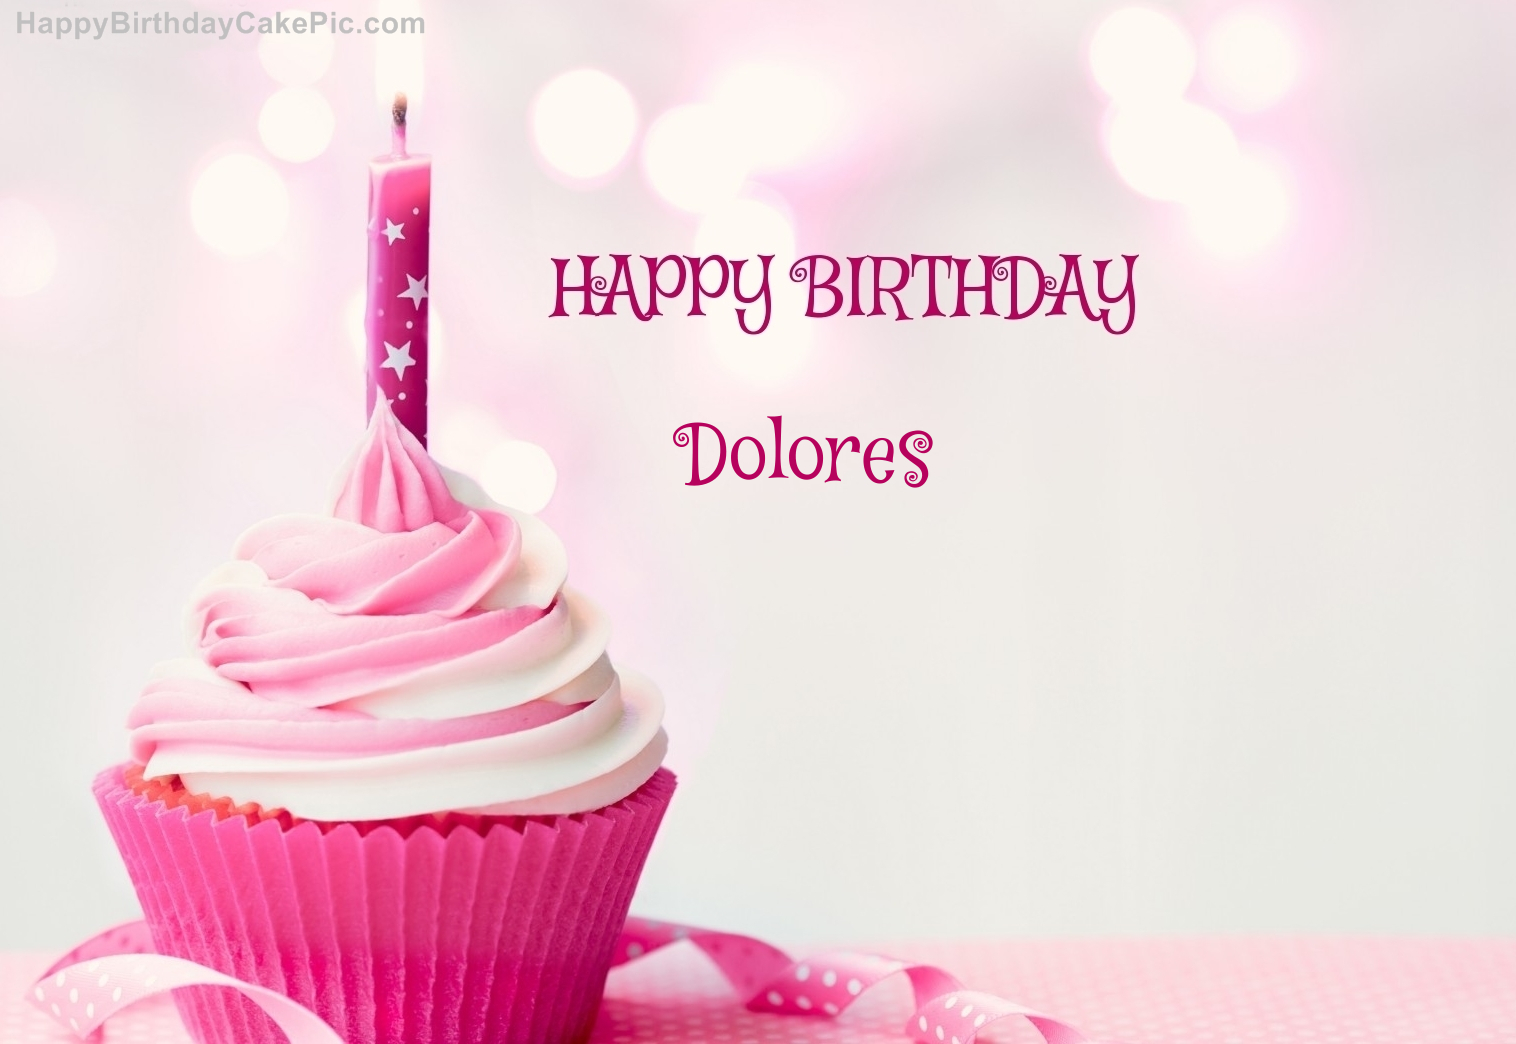 Happy Birthday Cupcake Candle Pink Cake For Dolores